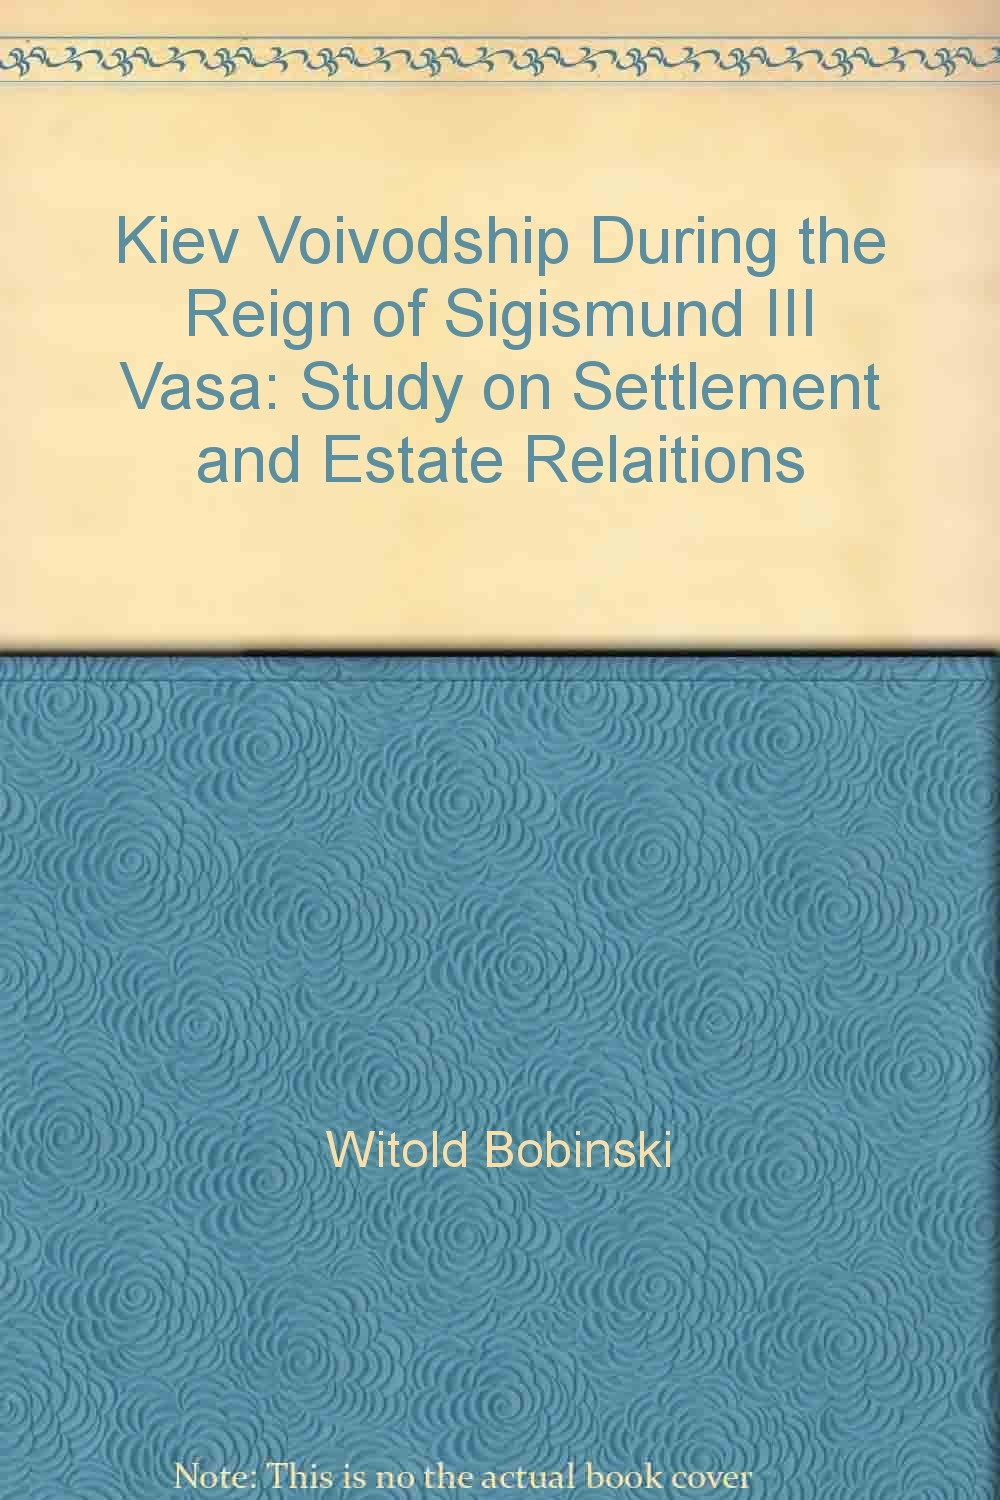 Read Online Kiev Voivodship During the Reign of Sigismund III Vasa: Study on Settlement and Estate Relaitions pdf epub